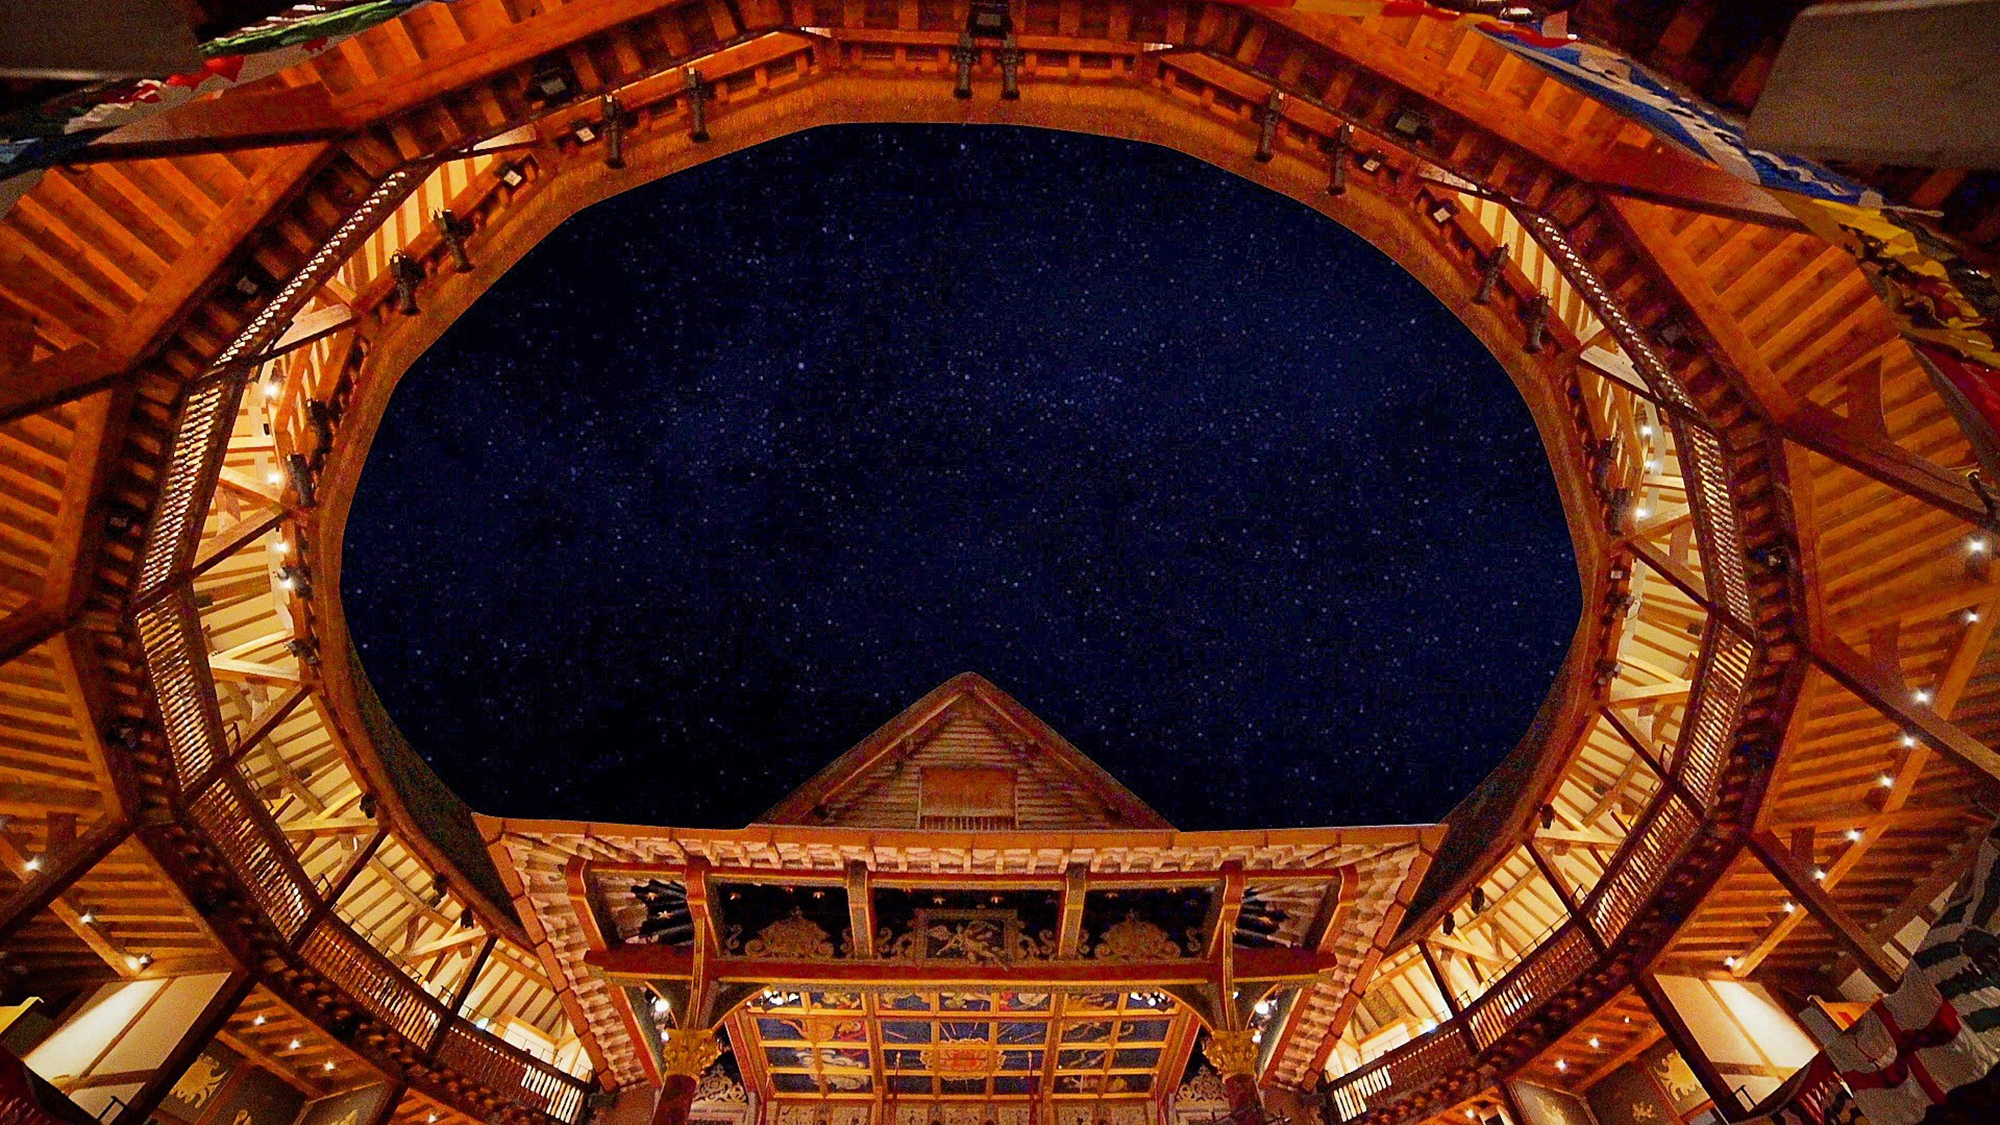 Dark starry sky shown through the roof of the Globe